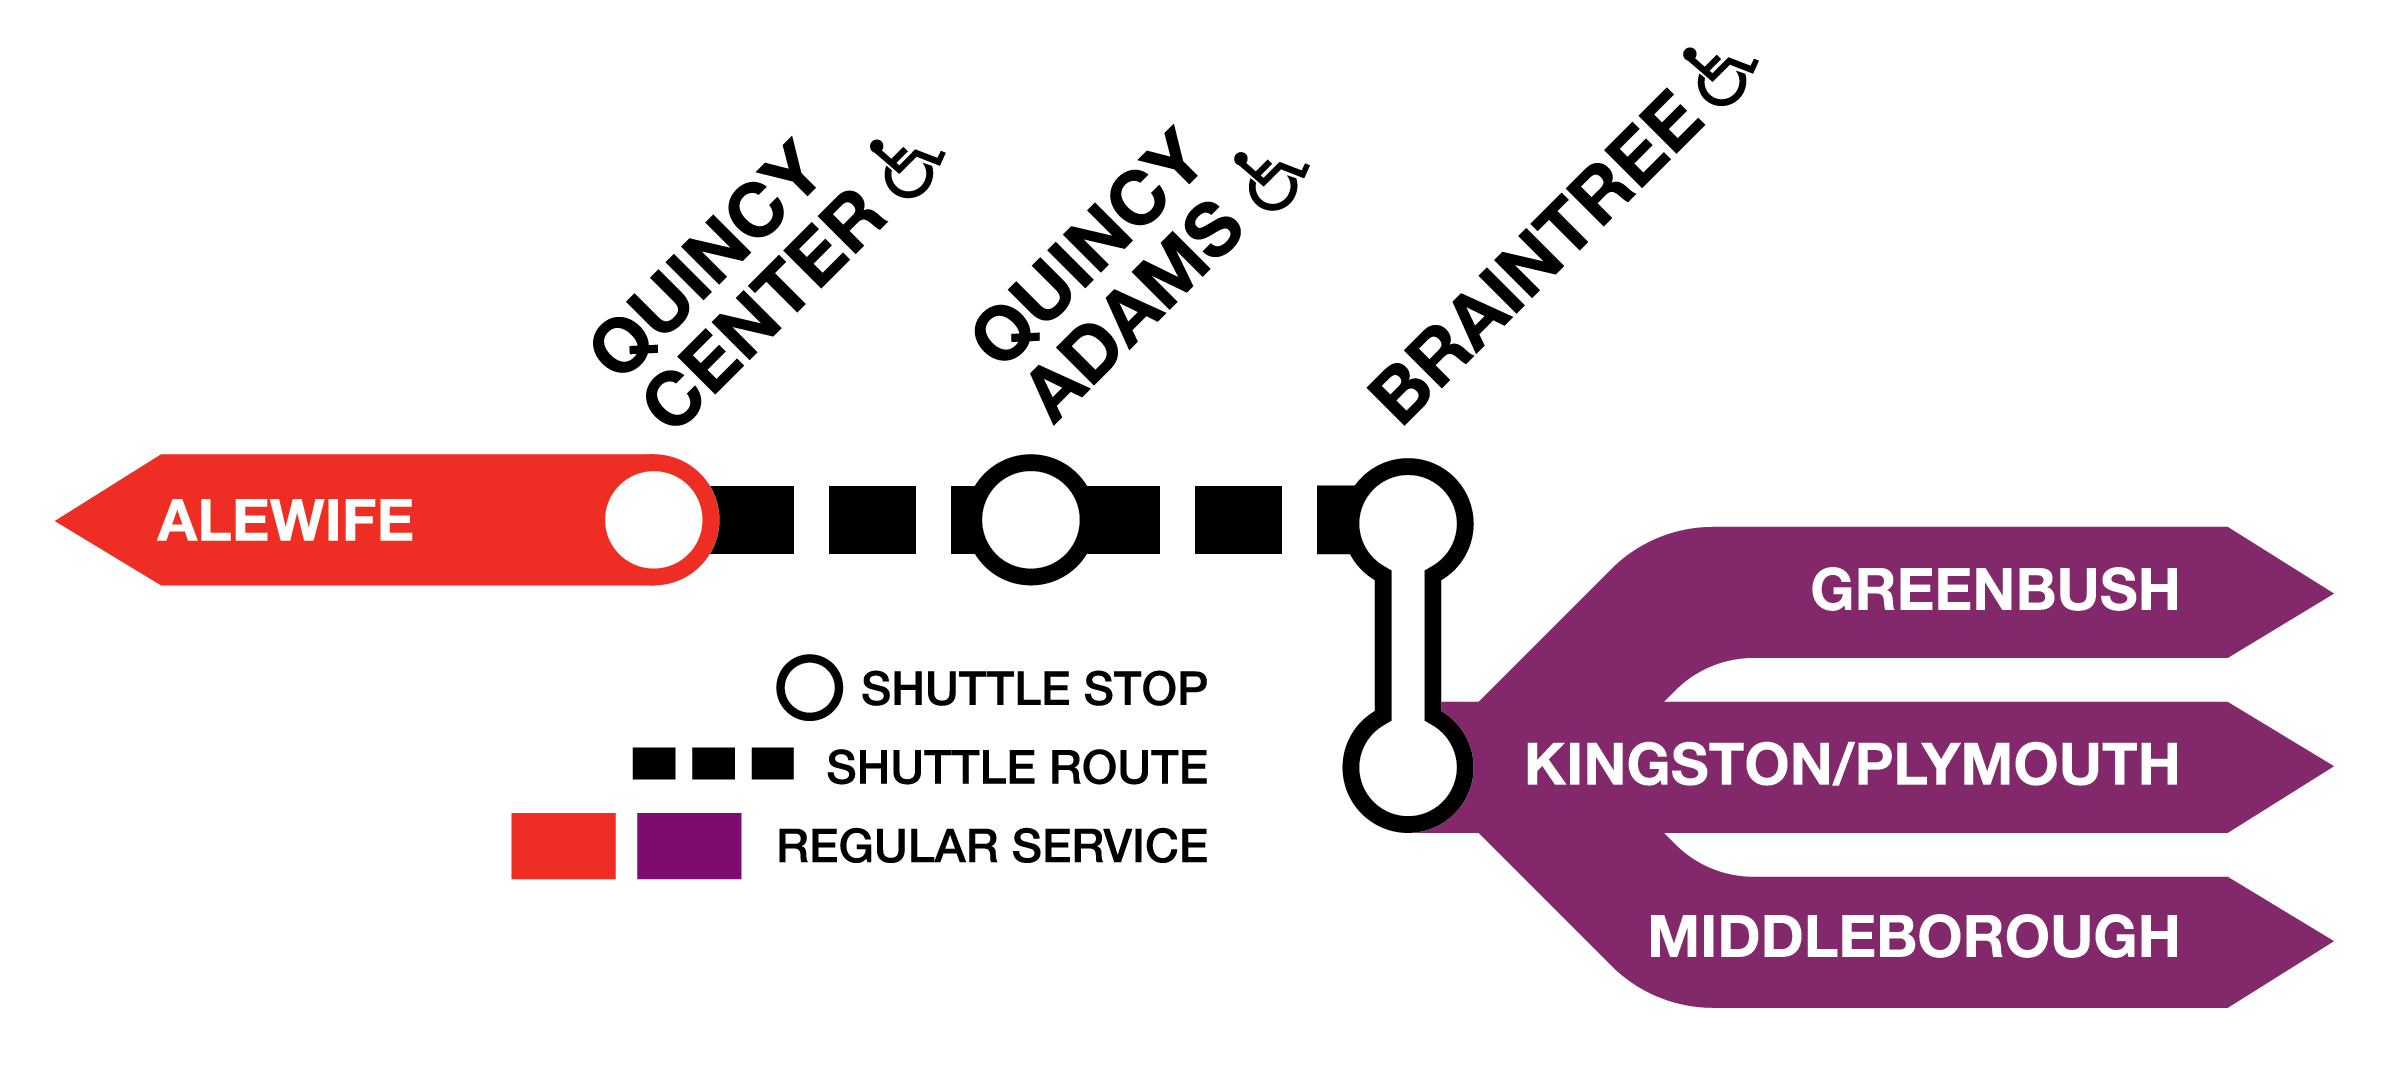 Shuttle diagram of the Red Line and 3 Commuter Rail Lines (Greenbush, Kingston/Plymouth, and Middleborough). Shuttles run between Quincy Center and Braintree. The 3 Commuter Rail Lines which normally run to South Station will instead terminate at Bratinree, where riders can transfer to the shuttle and then to the Red Line.